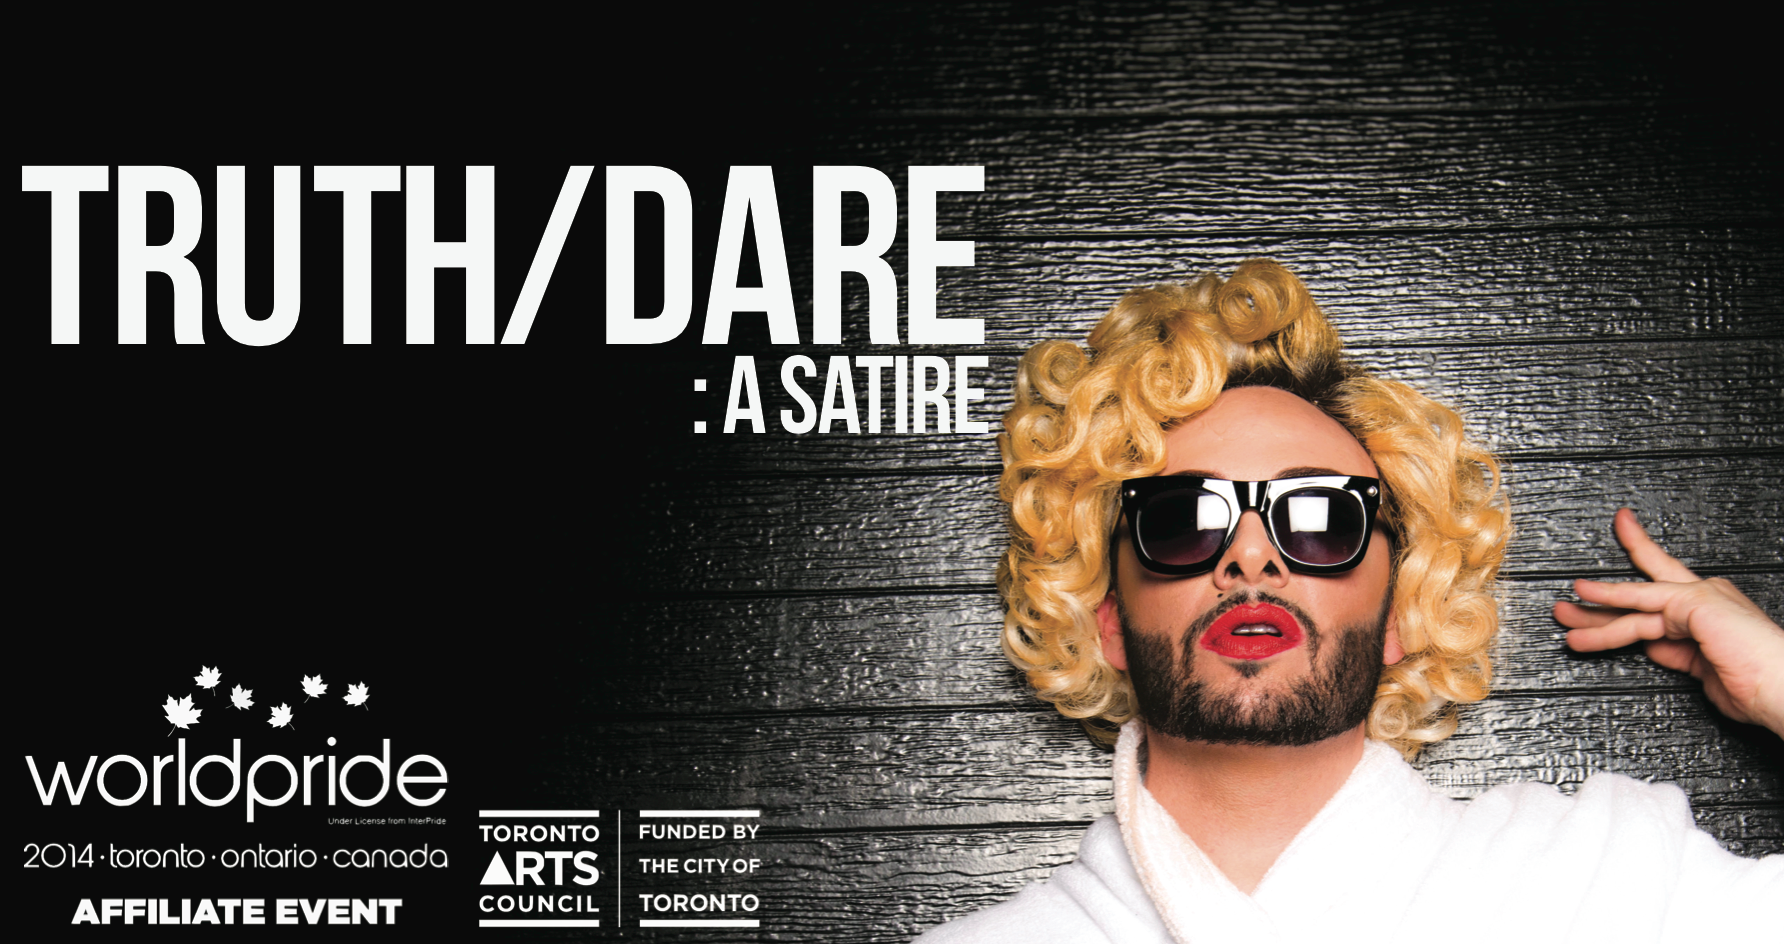 TRUTH/DARE: A SatireCreated by Salvatore Antonio and Adamo Ruggiero Presented as aToronto Arts Council Projectand an officialWorldPride Affiliate Event  The Citadel: 304 Parliament StWed. June 25th/ Thur. June 26th/ Fri. June 27th/ Sat. June 28th/ Sun. June 29th Doors open at 8:30pm, performance begins at 9:00pmTickets: $20 advance at ticketwise.ca / $25 door starting at 7:30pm